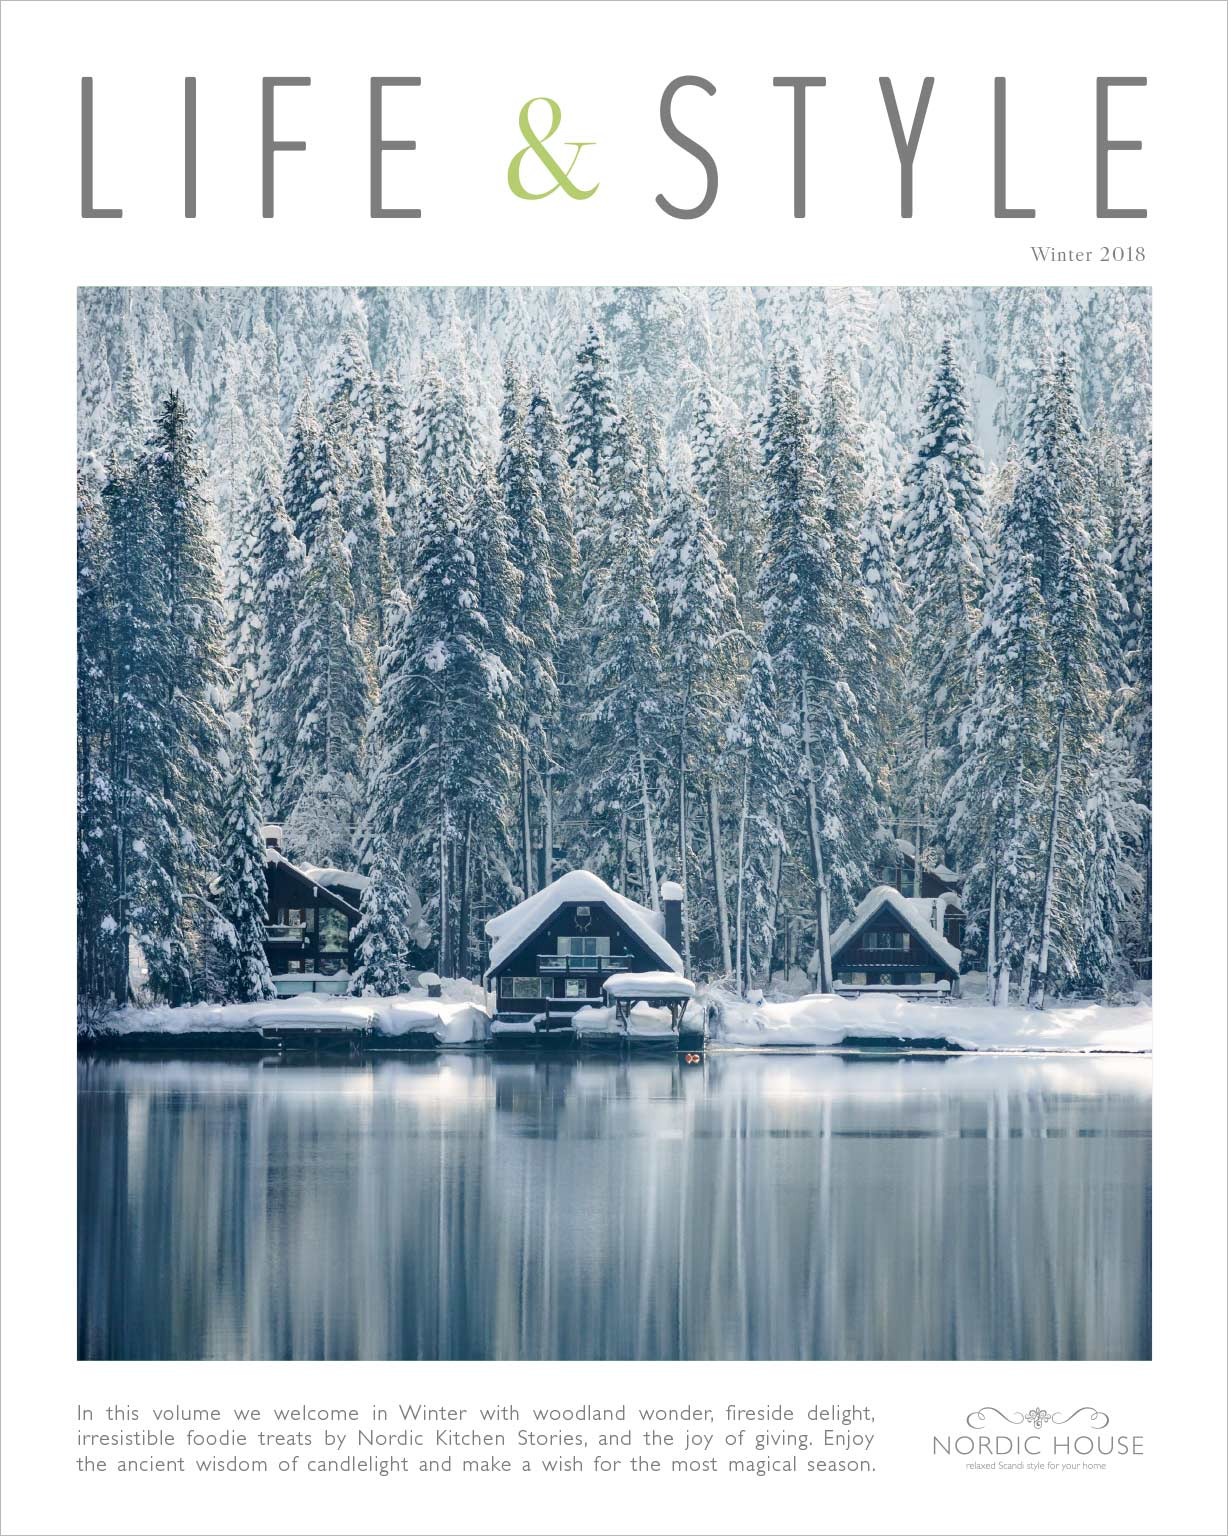 Request your copy of our beautiful winter 2018 magazine